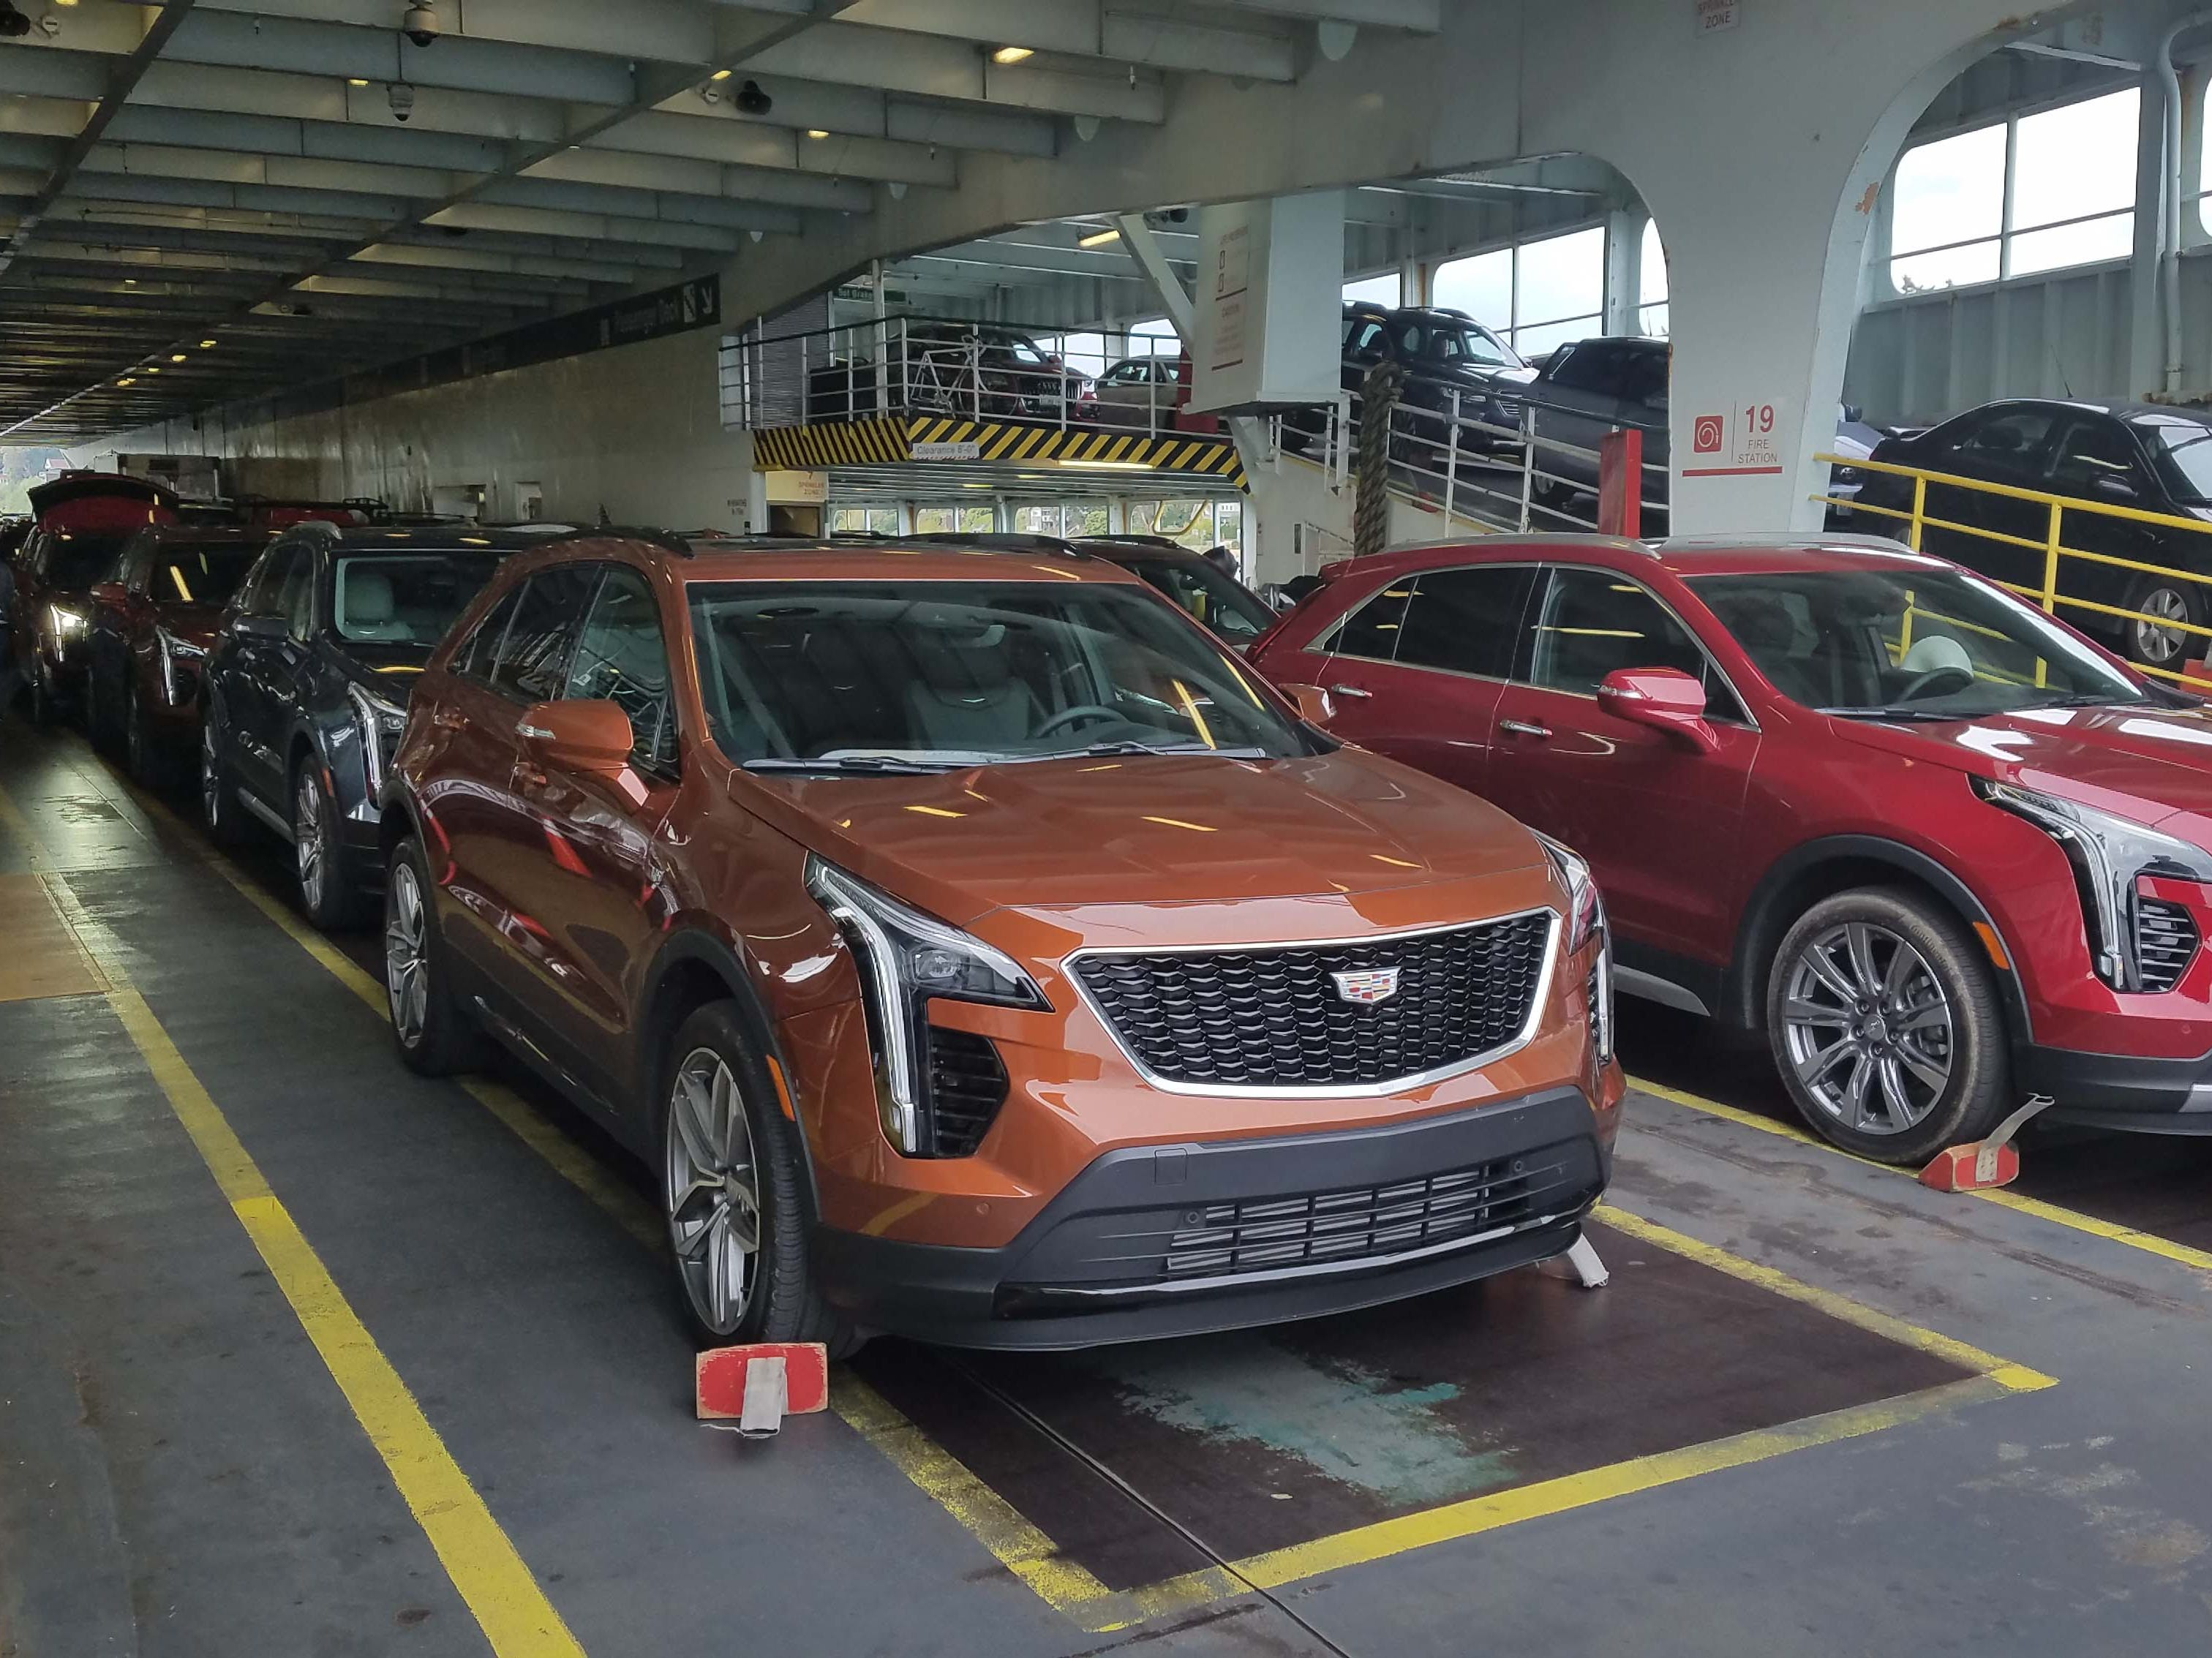 A fleet of brand-new, 2019 Cadillac XT4 utes crosses Seattle's Puget Sound on a ferry. The new car has a presence that other entry-level Caddies have lacked.